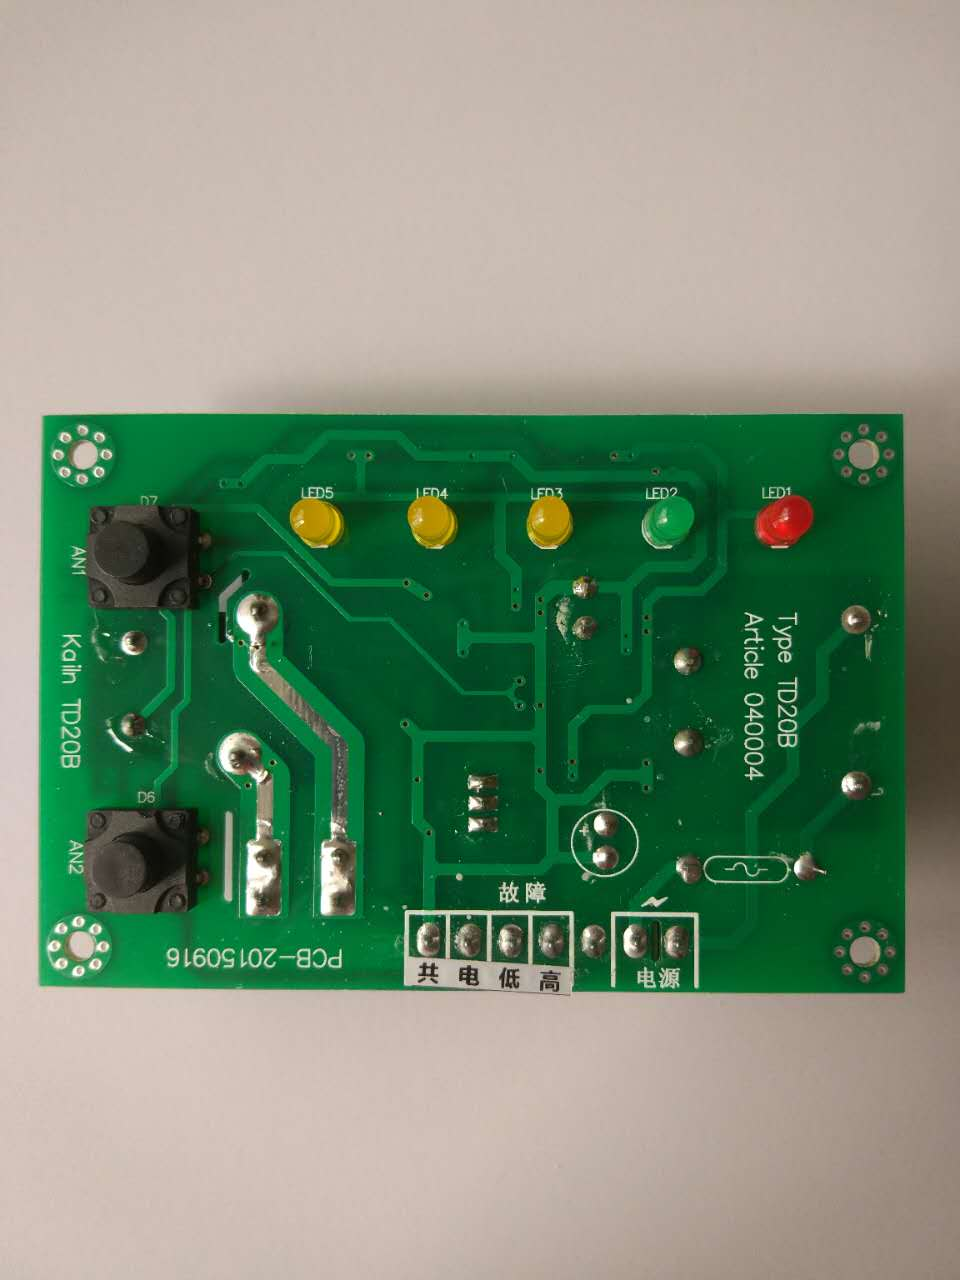 Circuit, Version, Board, Dryer, Computer, Controller